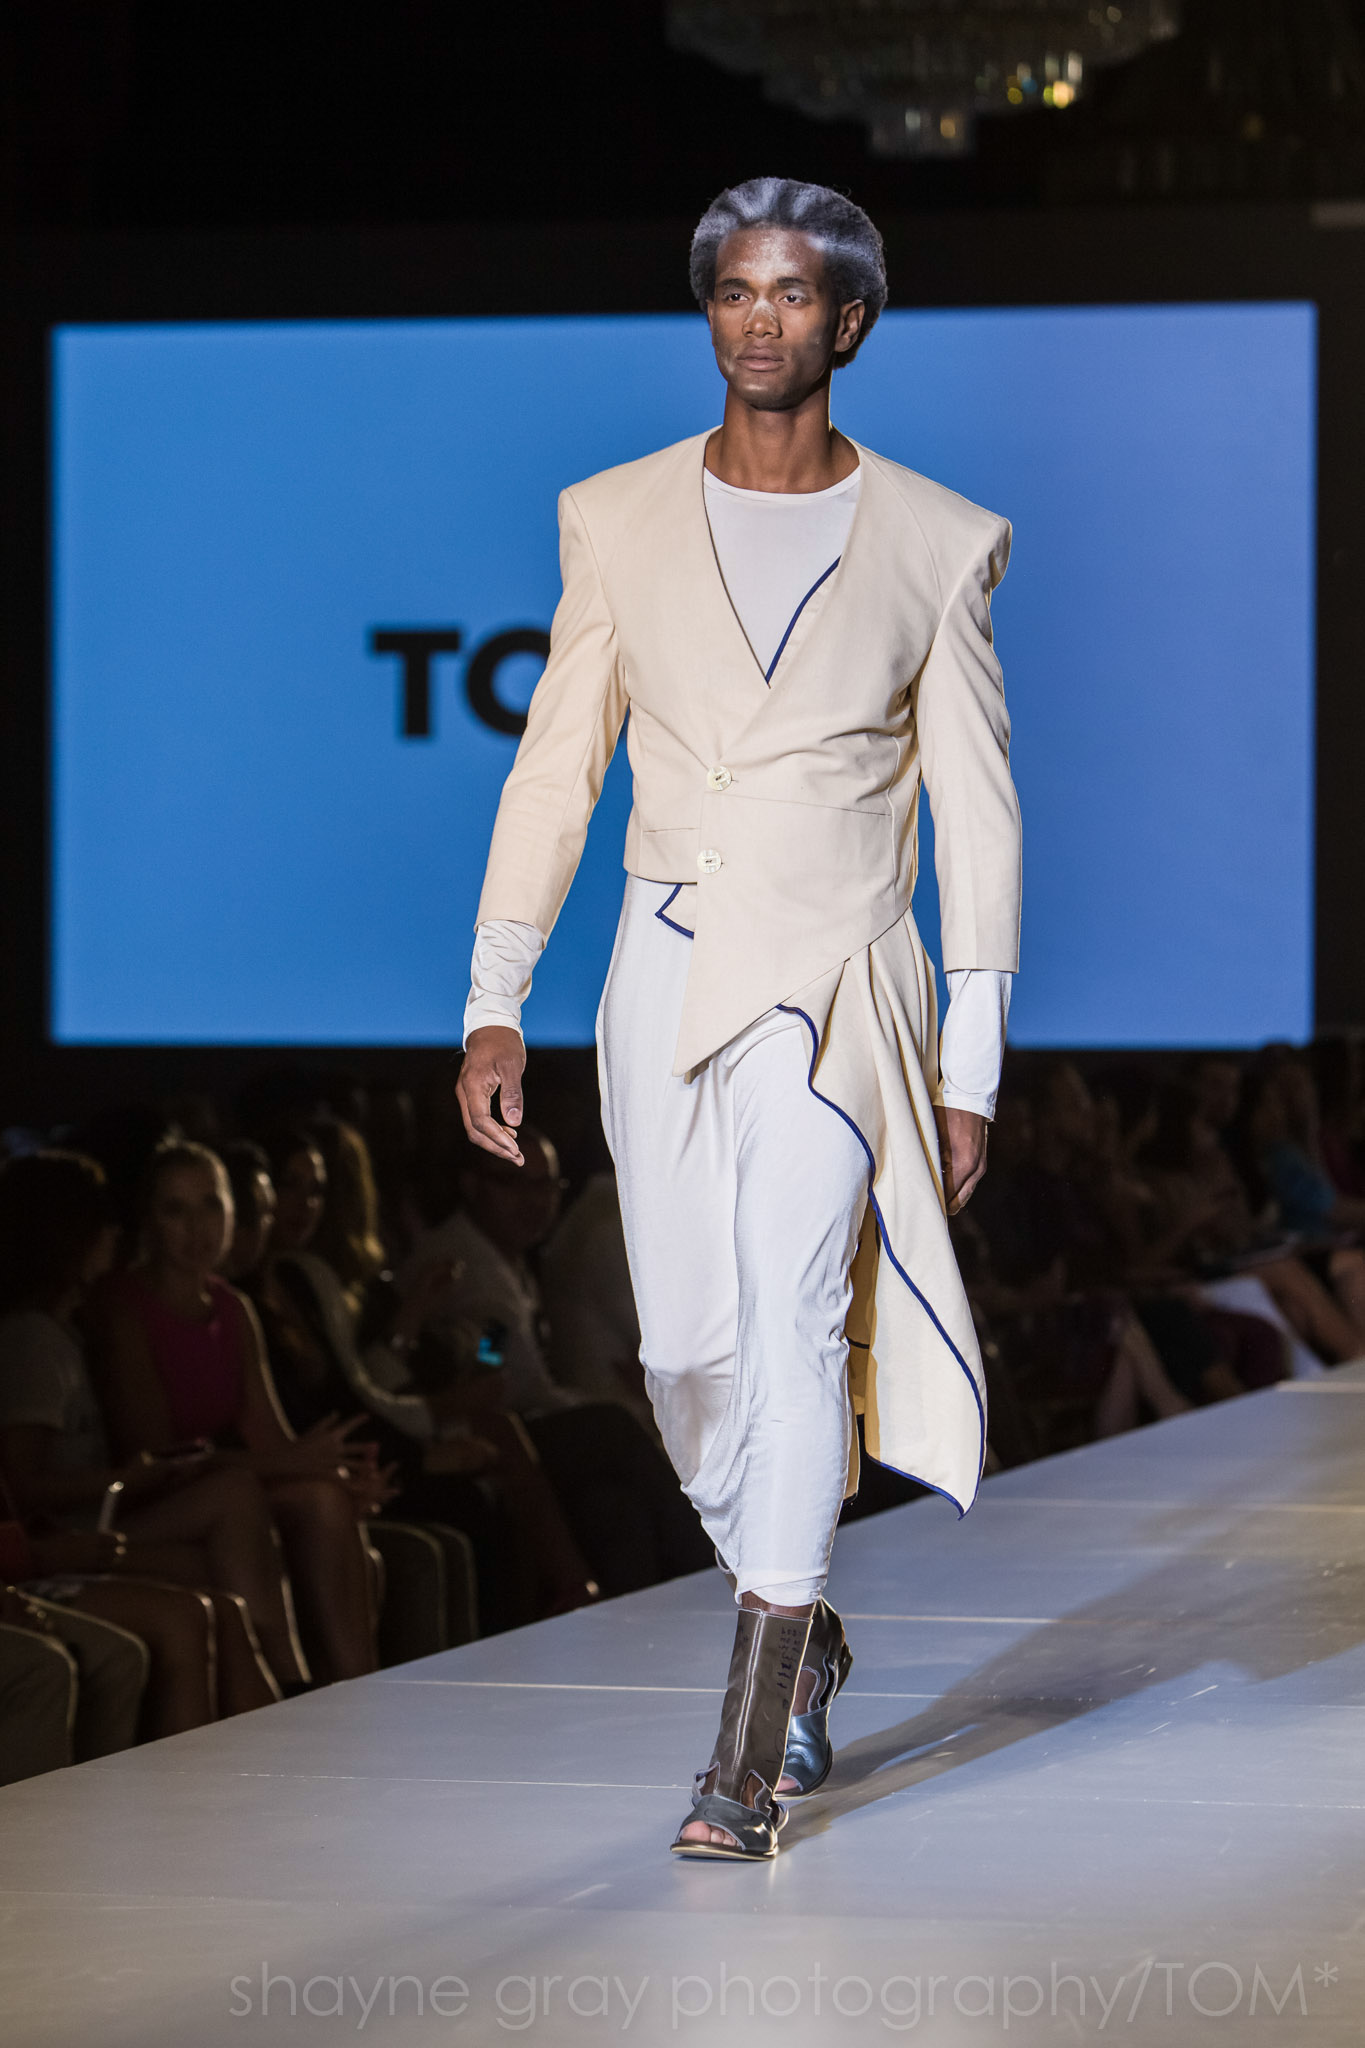 Shayne-Gray-Toronto-men's-fashion_week-TOM-jose-duran-7678.jpg